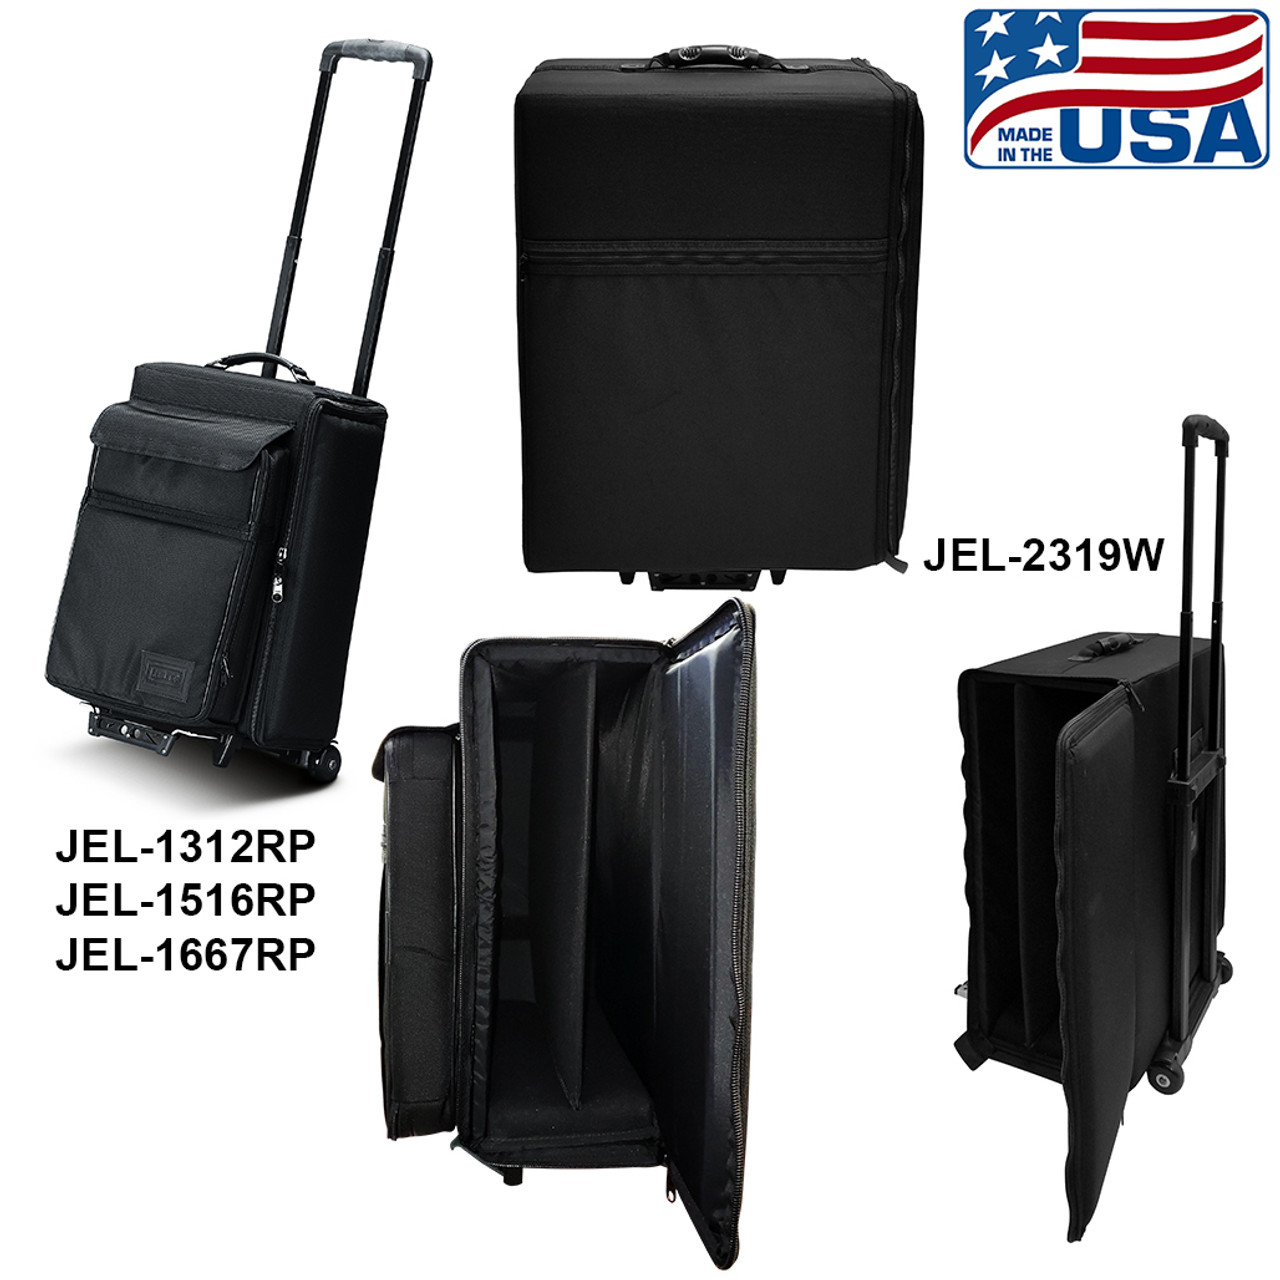 Side loading padded laptop bag with wheels and extension handle